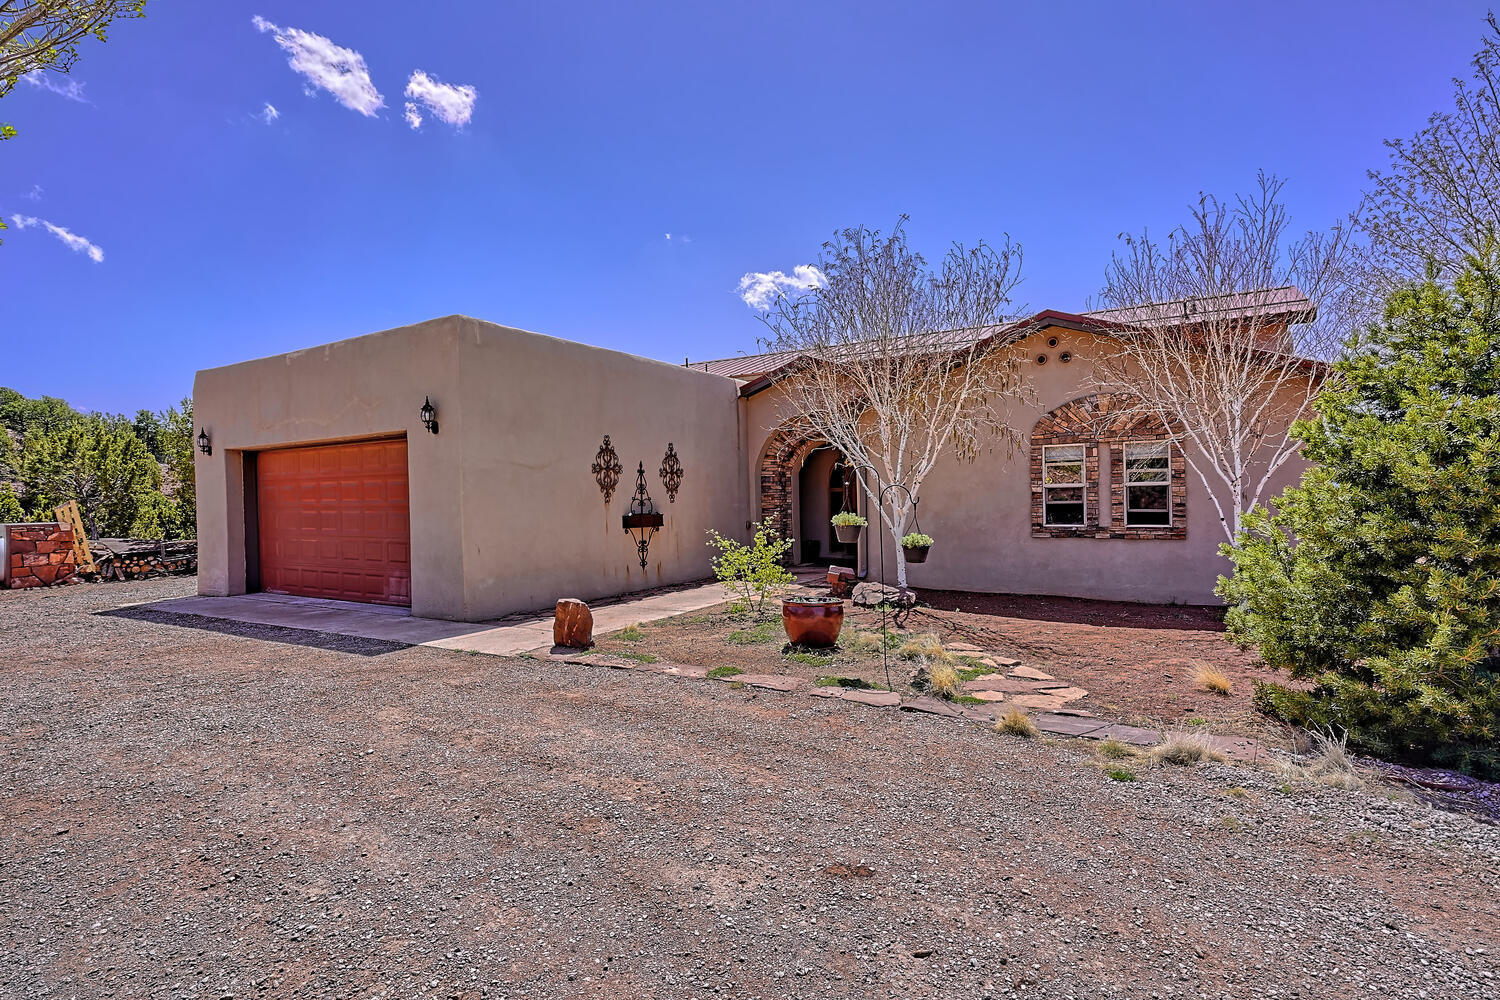 OPEN HOUSE 7/25 1-4pm Gorgeous 1 story custom home on 2.8 acres with stunning views. Enjoy the peace and seclusion this home has to offer in its private gated community only 10 minutes from ABQ. The entry way greets visitors with Travertine tile and an ornate mosaic medallion. The flowing floorplan opens out into the spacious Great Room with commanding picture windows for you to enjoy  fabulous mountain views. The kitchen is an entertainers delight with plenty of countertop space, cabinets and room to move!  It features granite countertops, maple cabinets, slate backsplash, bar seating, stainless steel appliances and an island with prep sink. Quality of construction and attention to detail throughout. New Well 2019, New Roof 2019, New Septic 2021 An additional 21 acres is available.